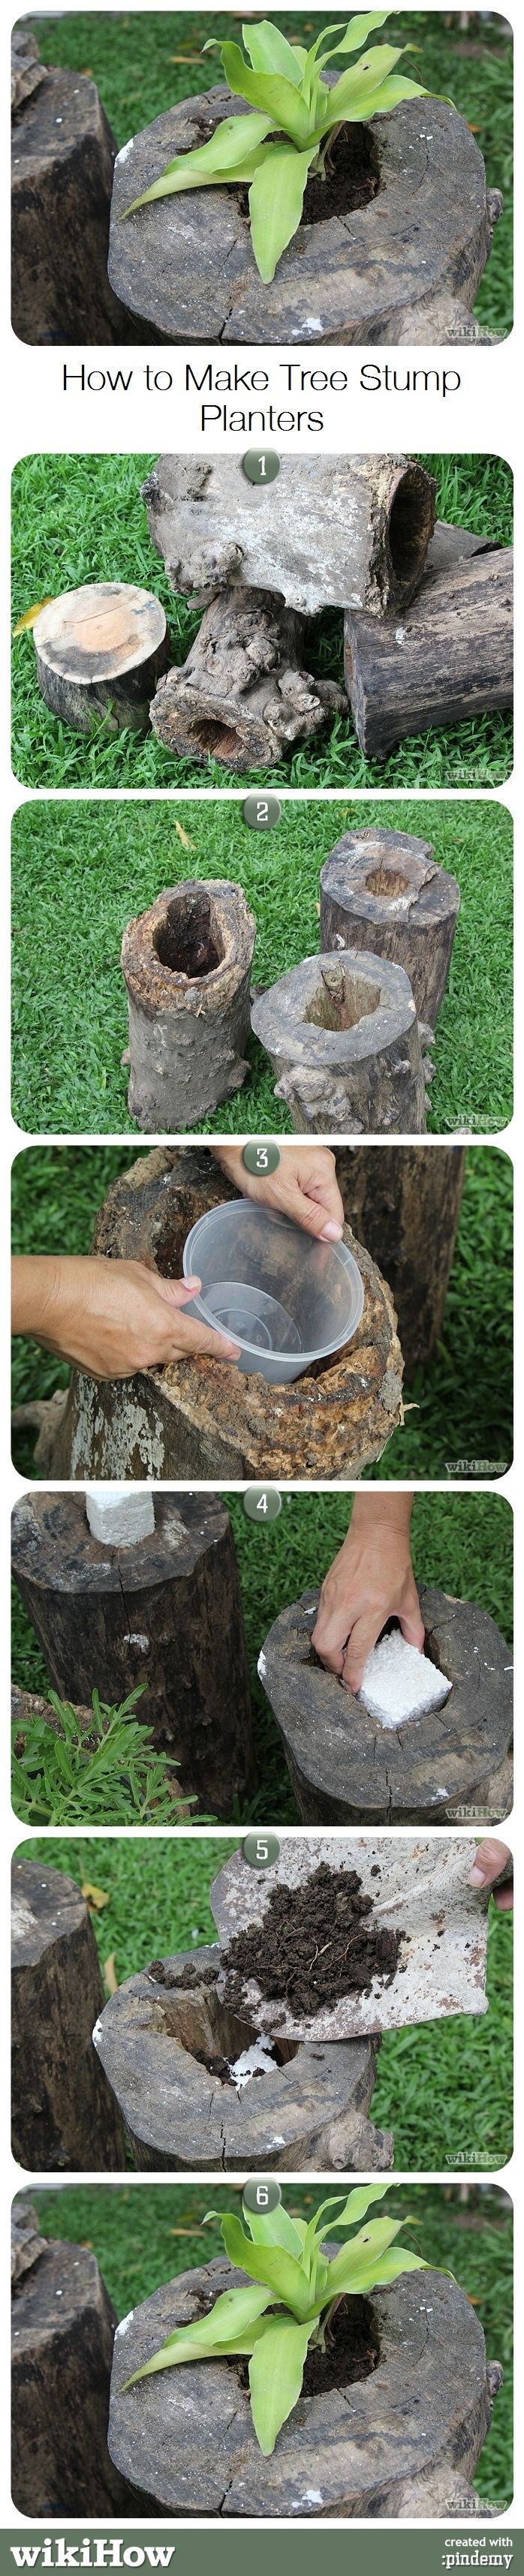 How to Make Tree Stump Planters                                                                                                                                                      More